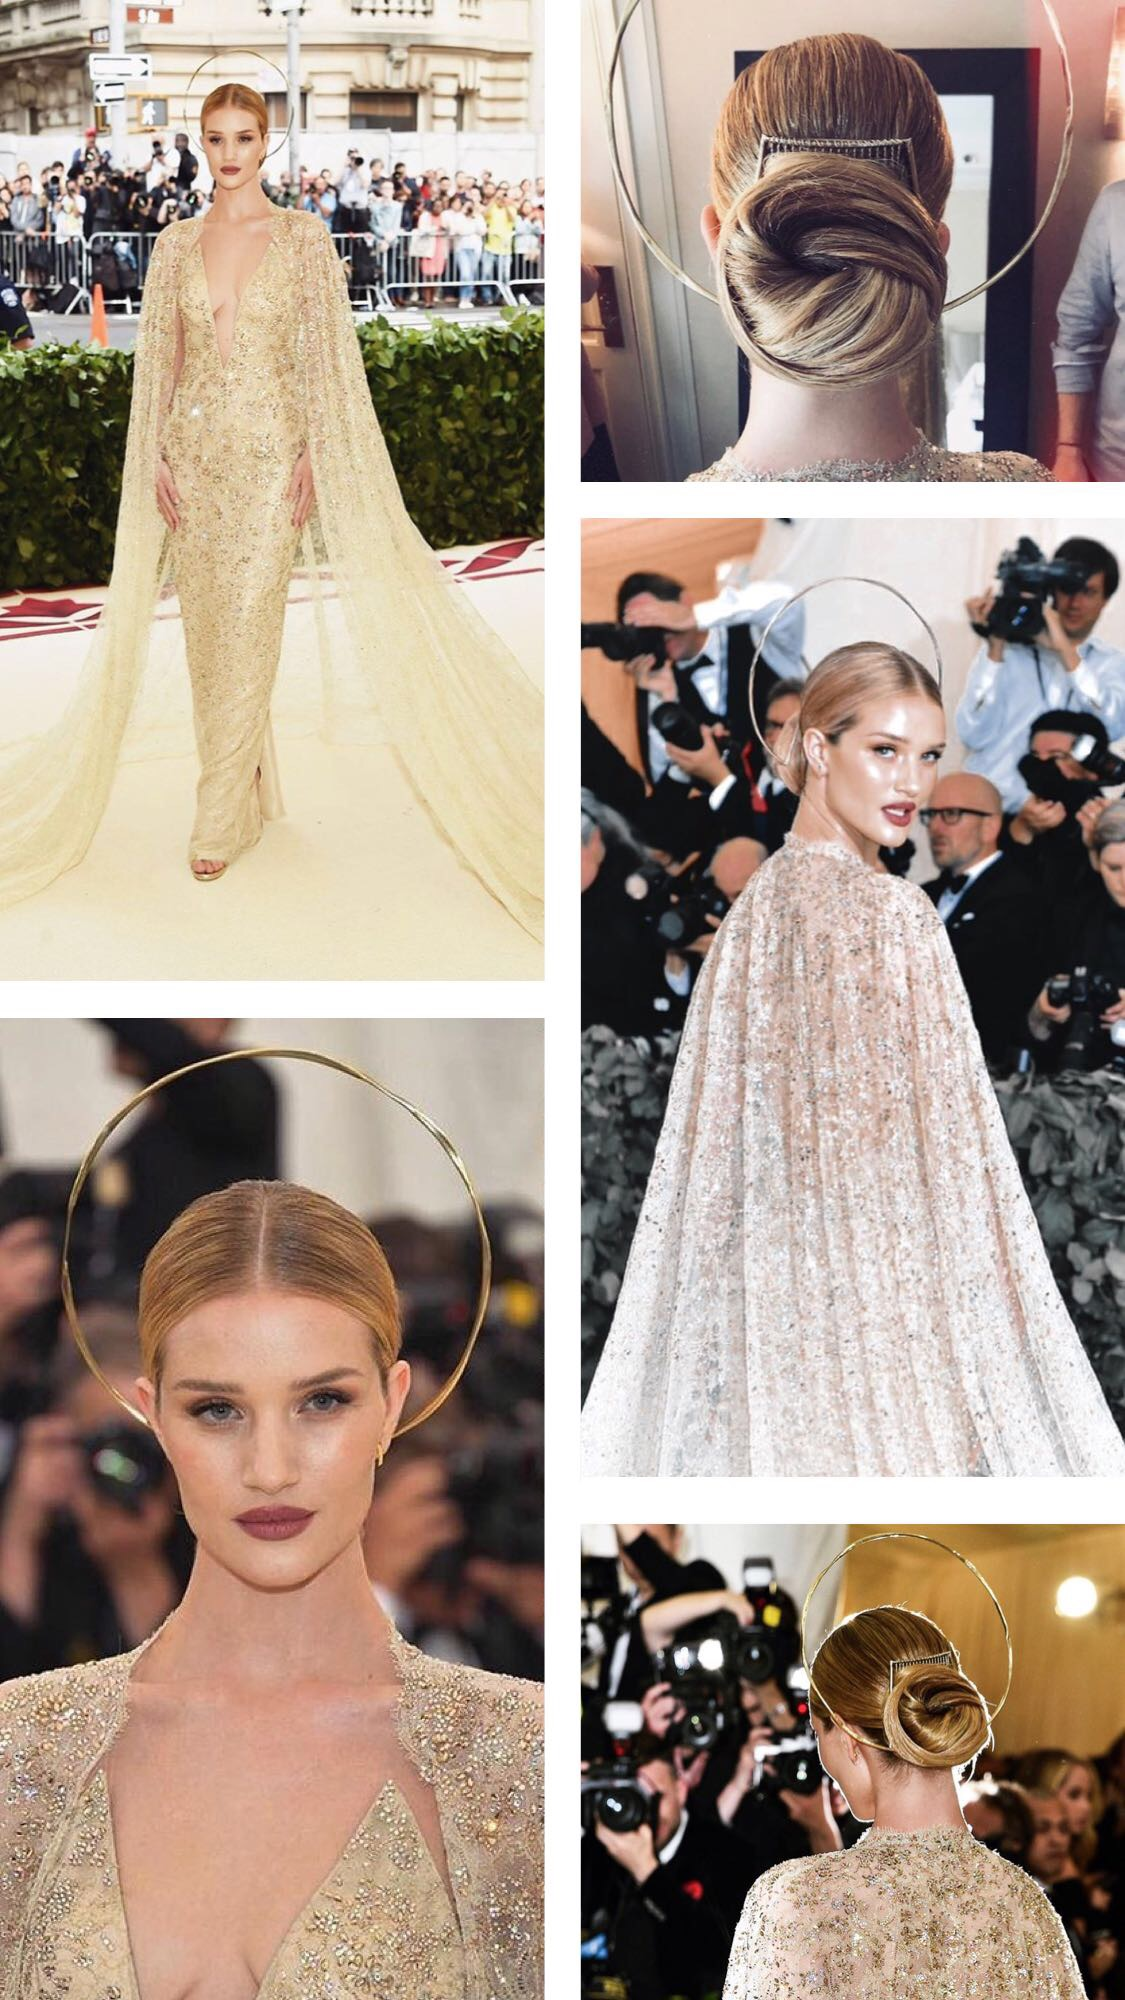 Rosie Huntington Whitely at the Met Gala 2018